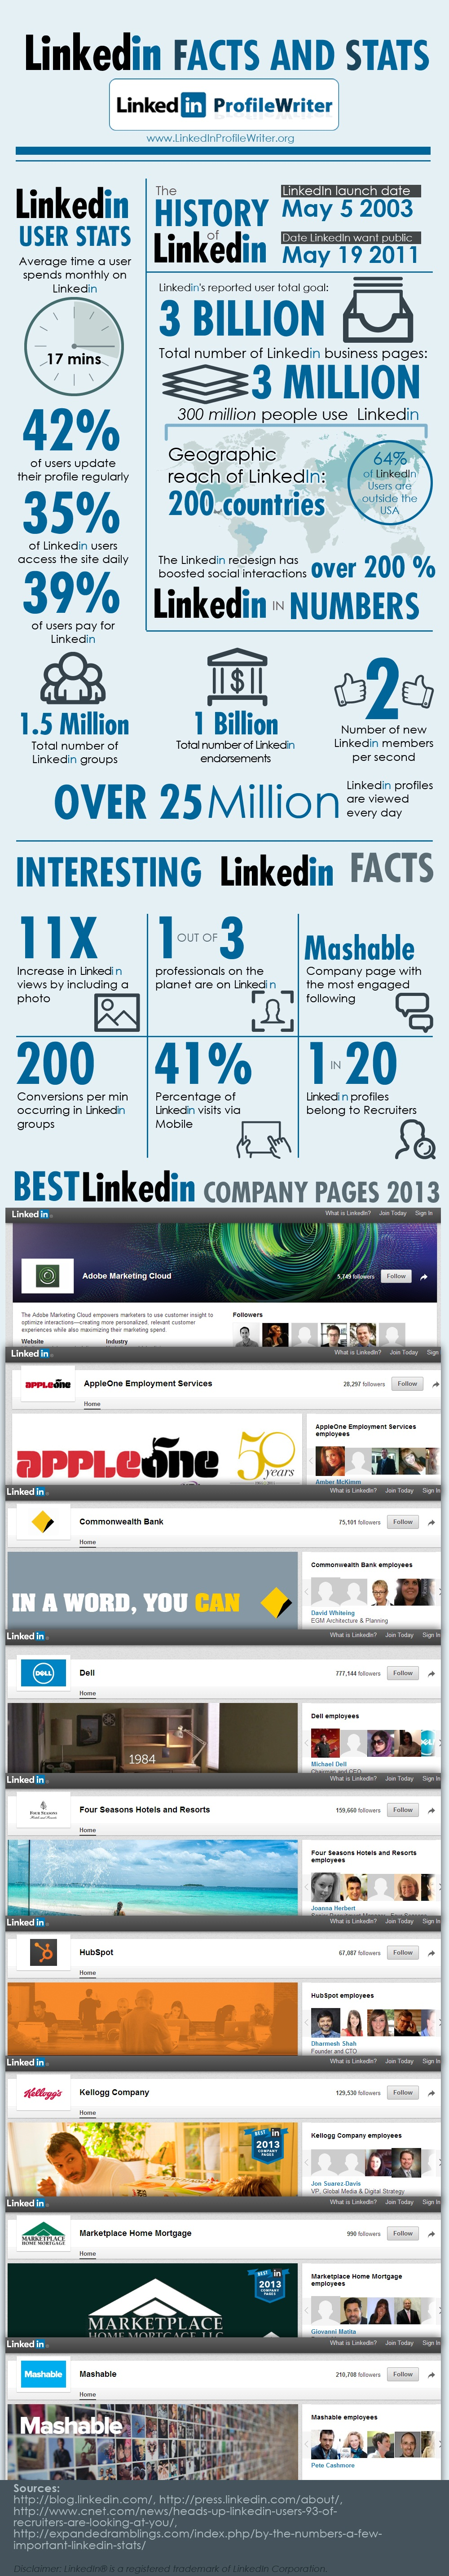 LinkedIn Facts and statistics